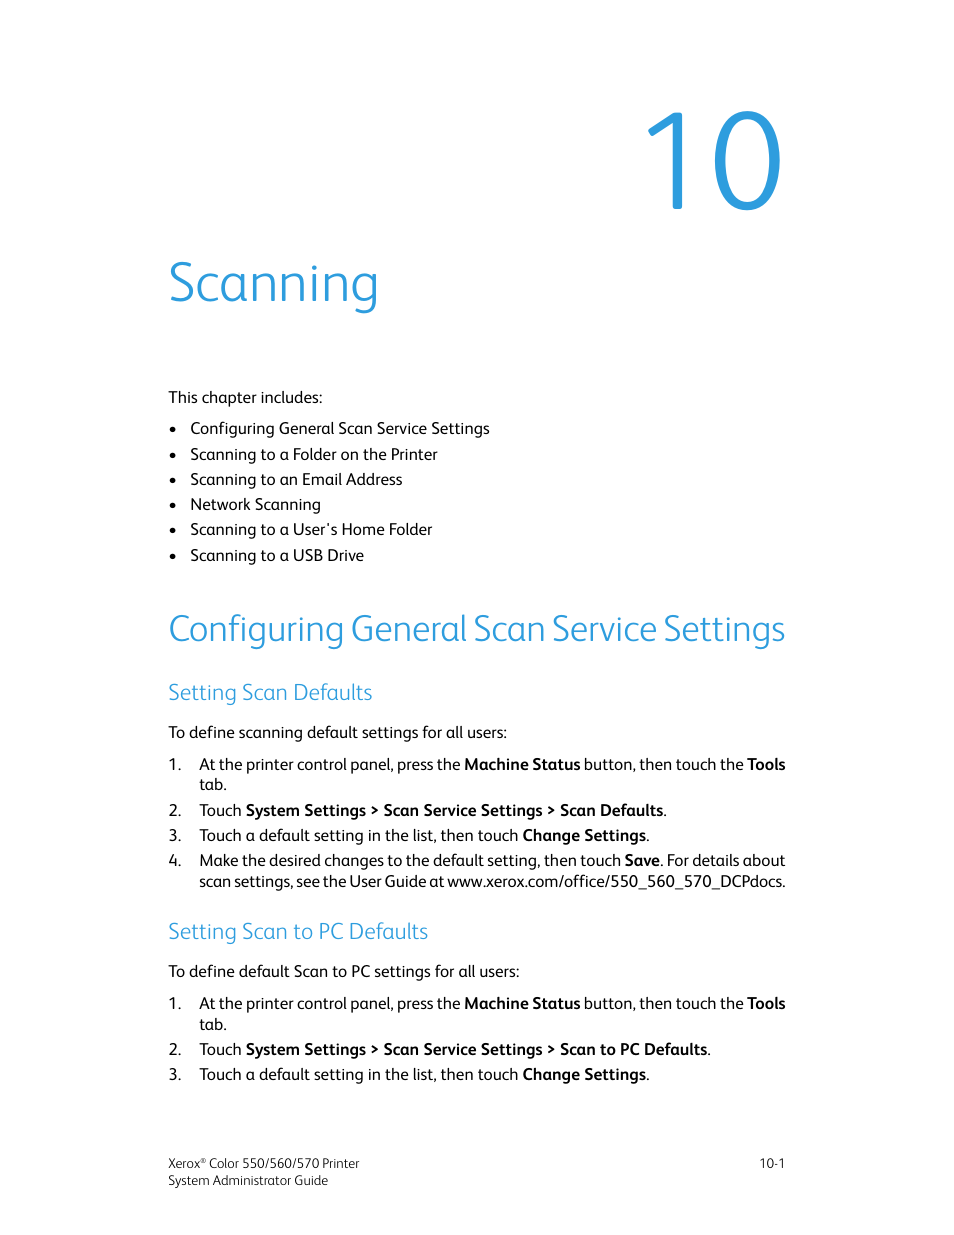 Scanning, Configuring general scan service settings, Setting